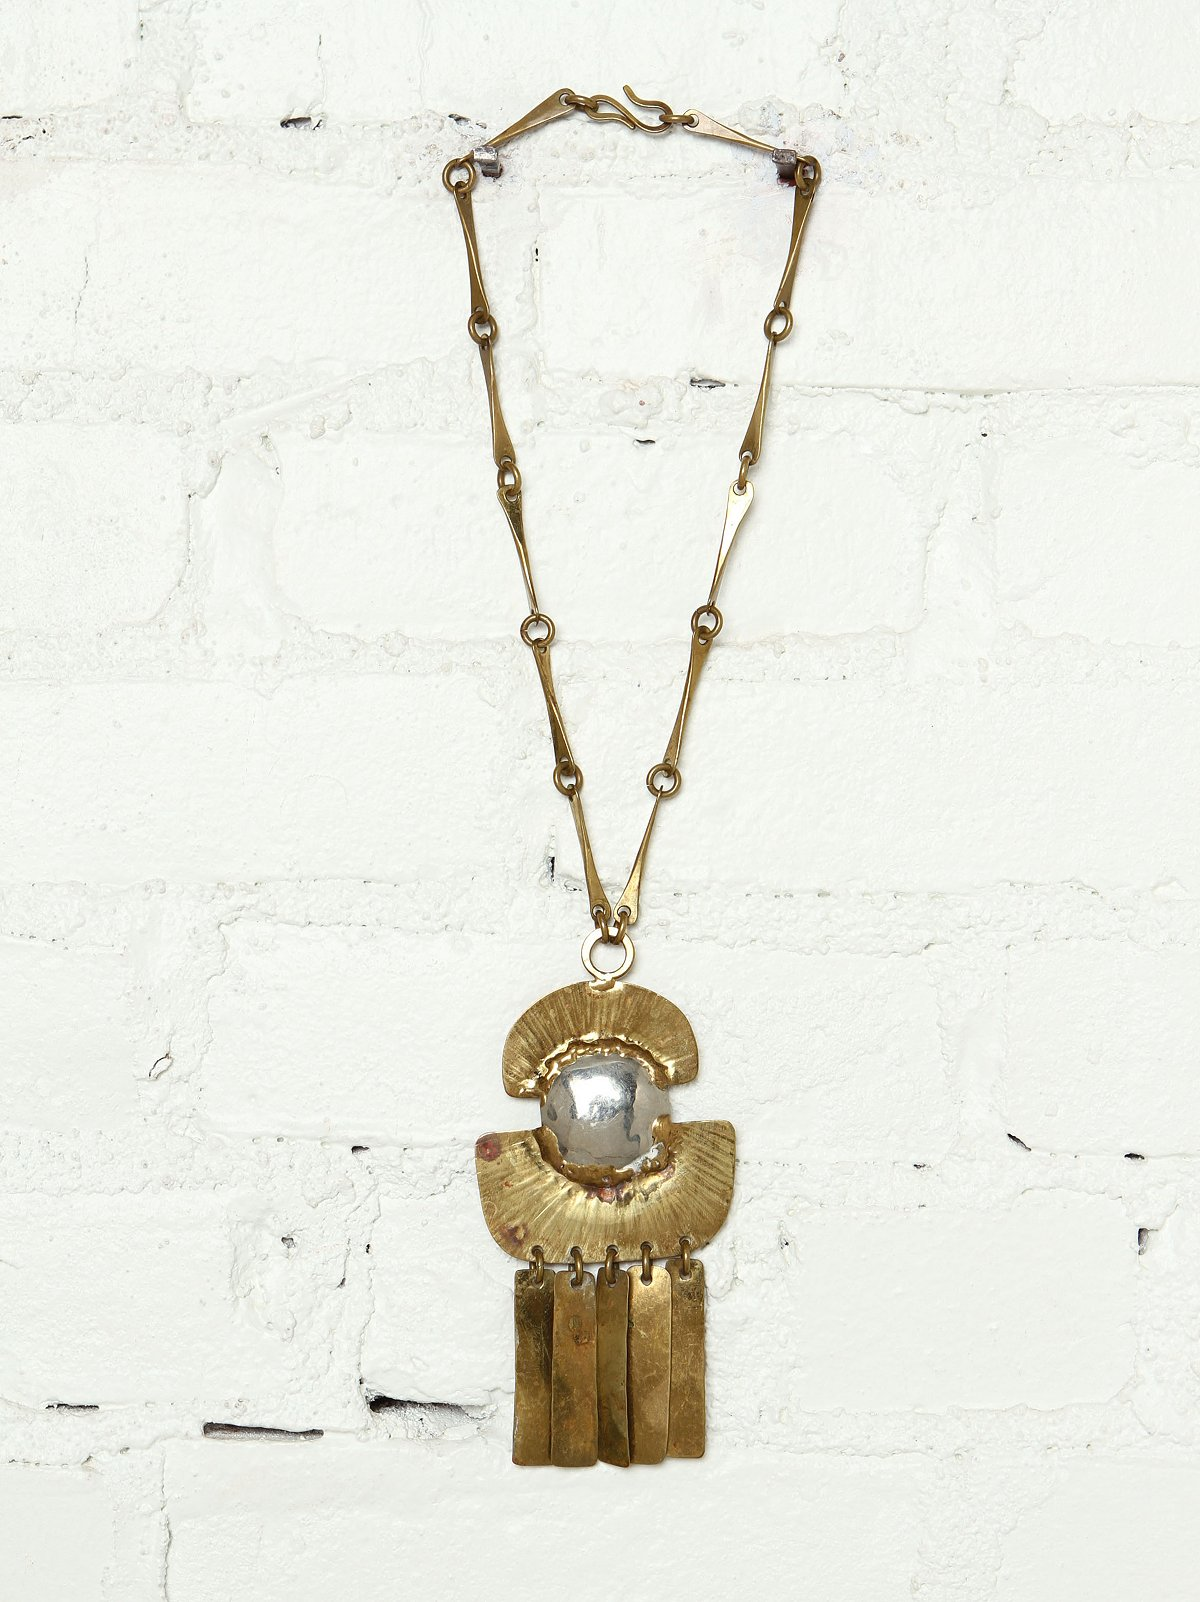 Vintage 1980s Chain and Tassel Necklace